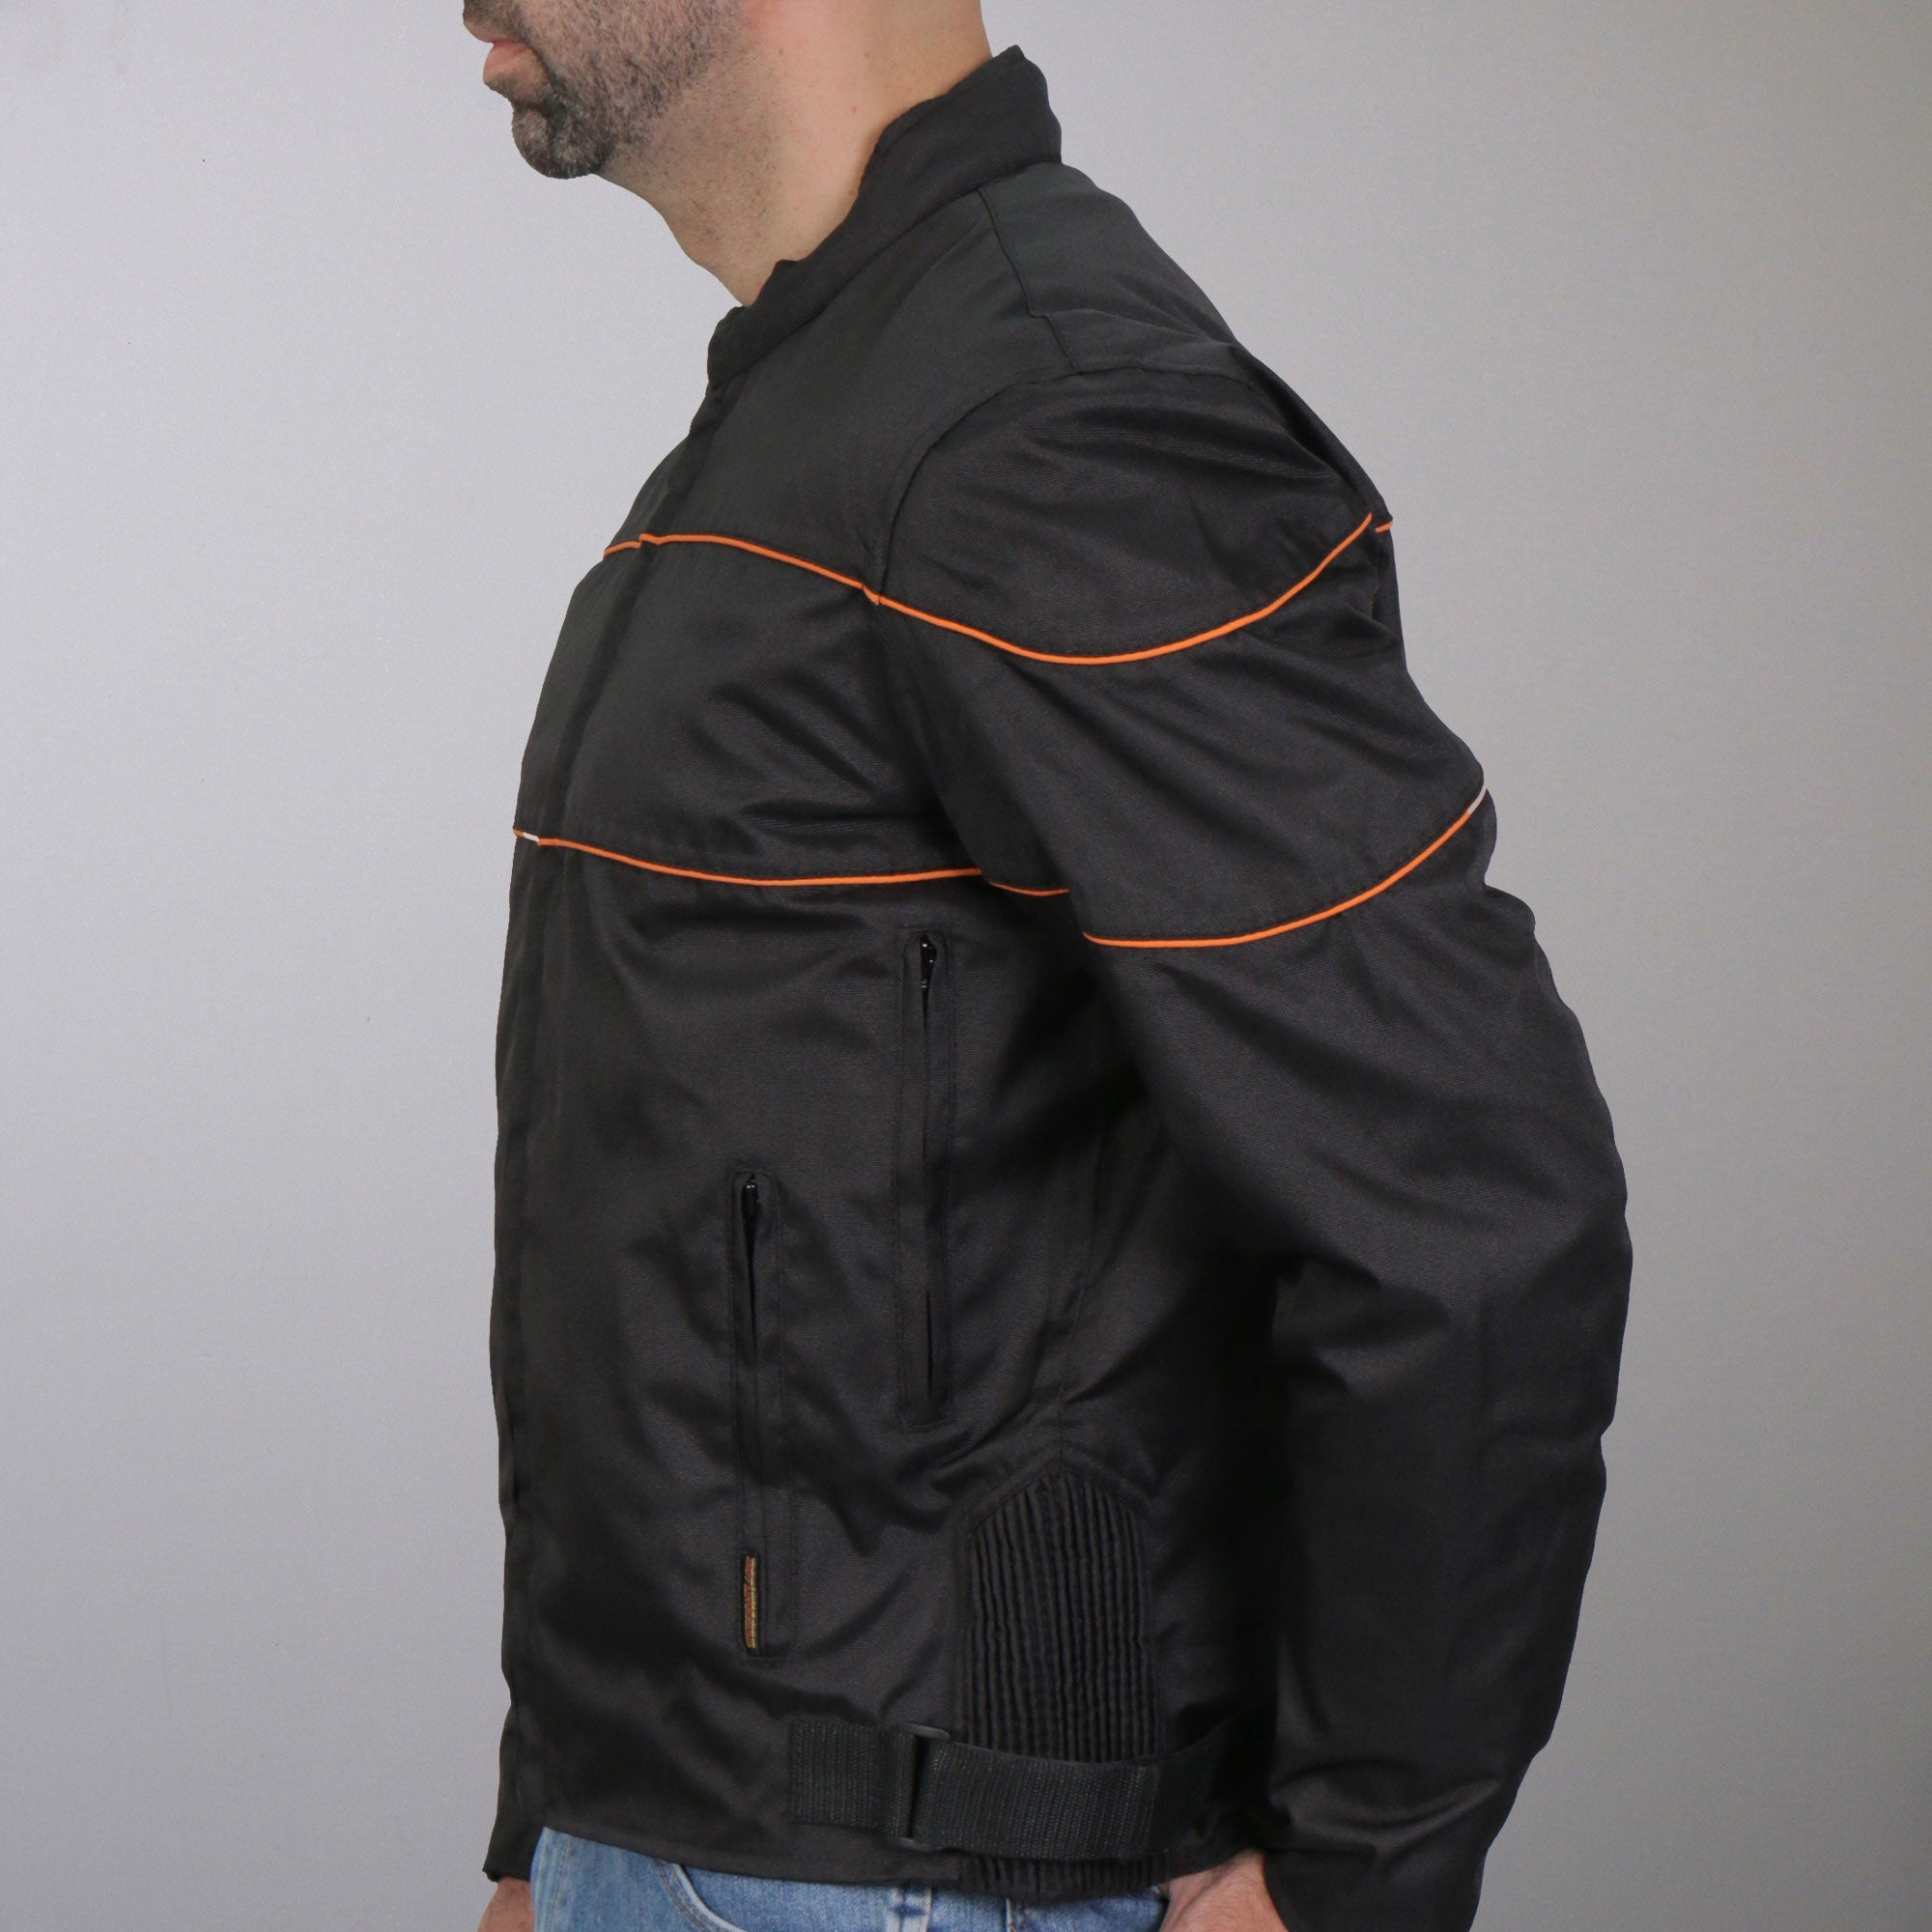 Hot Leathers Nylon Jacket with Orange Reflective Trim